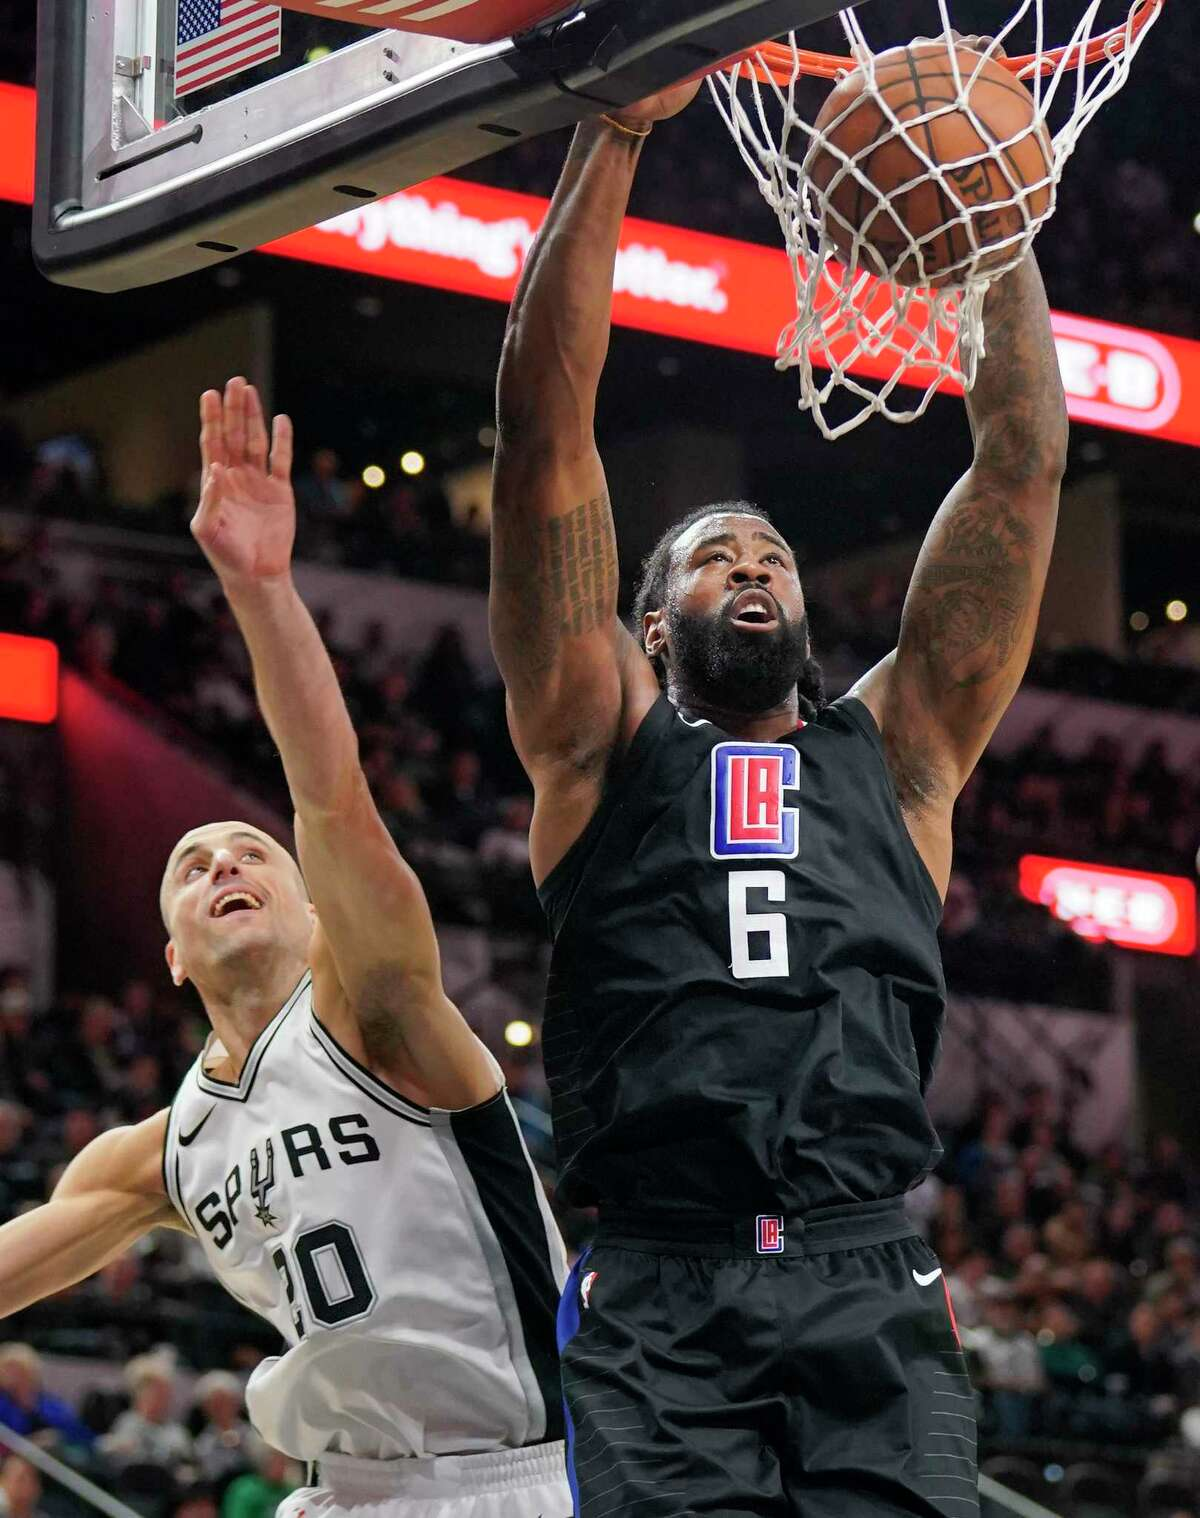 Los Angeles Clippers center DeAndre Jordan (6) dunks as San Antonio Spurs guard Manu Ginobili looks on during the first half of an NBA basketball game, Monday, Dec. 18, 2017, in San Antonio. (AP Photo/Darren Abate)